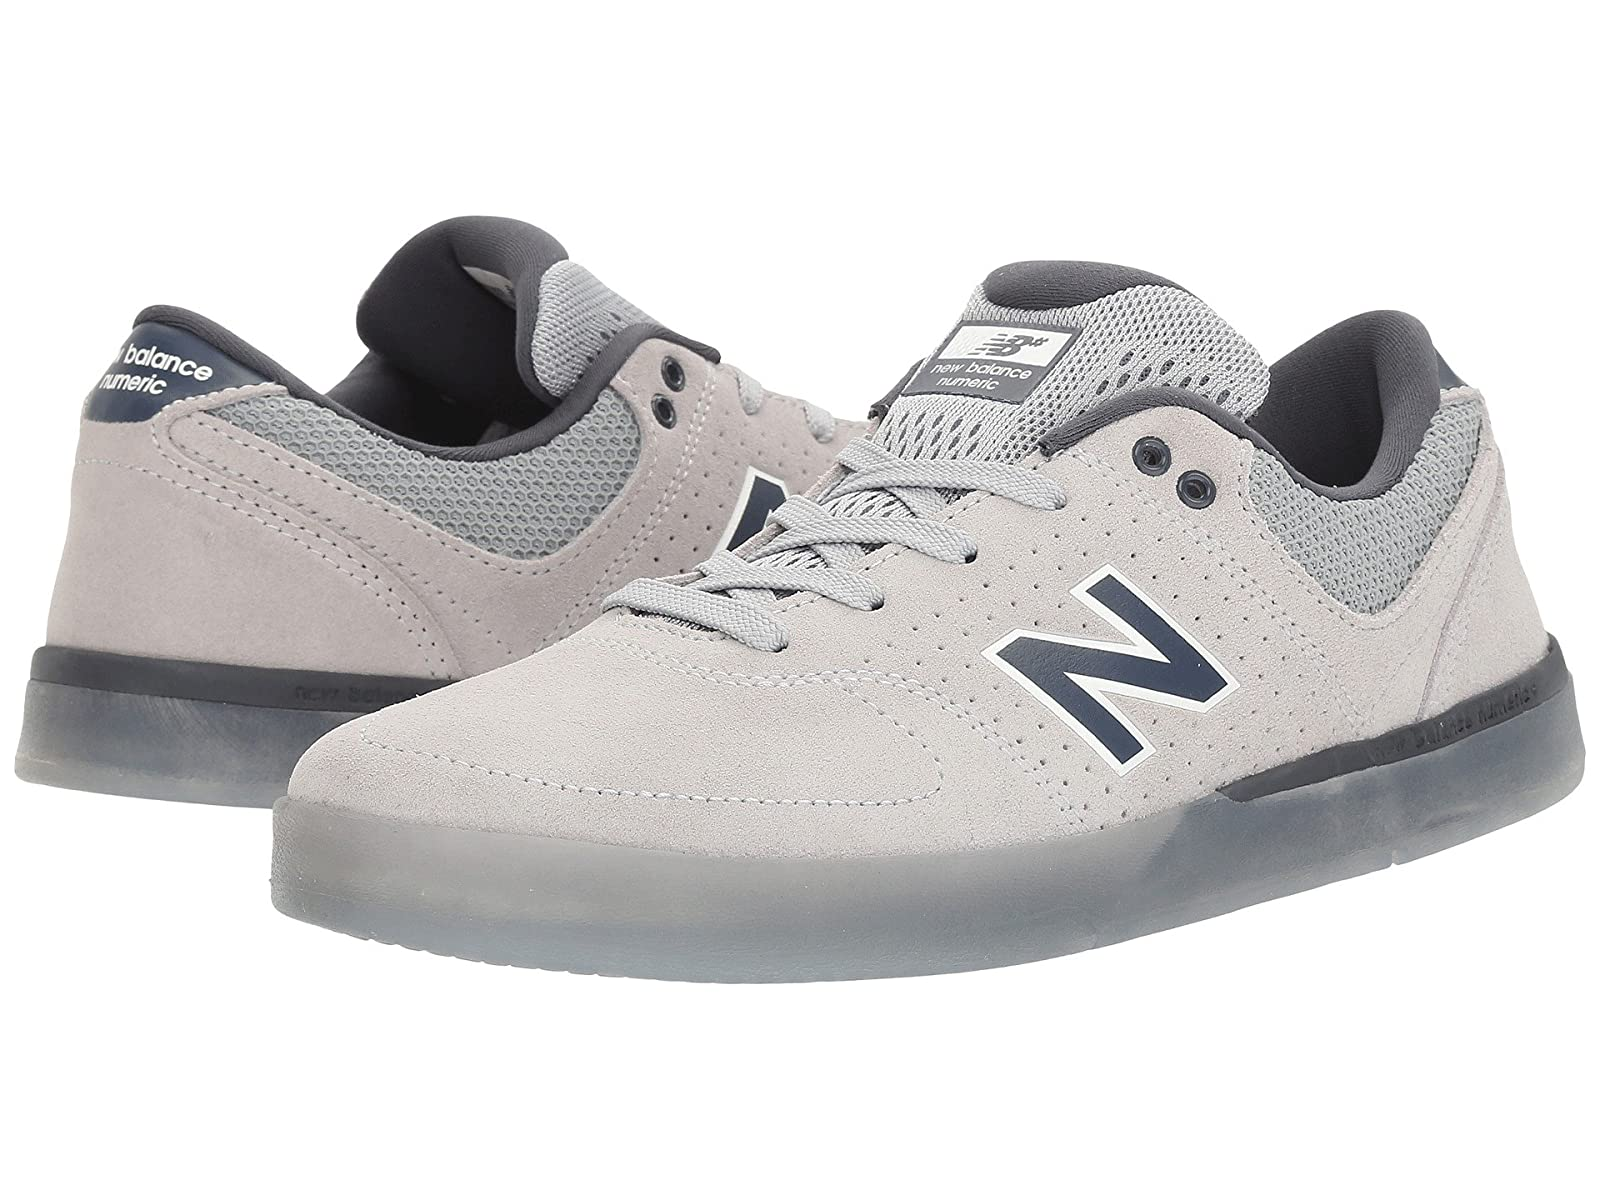 New Balance Numeric NM533Cheap and distinctive eye-catching shoes